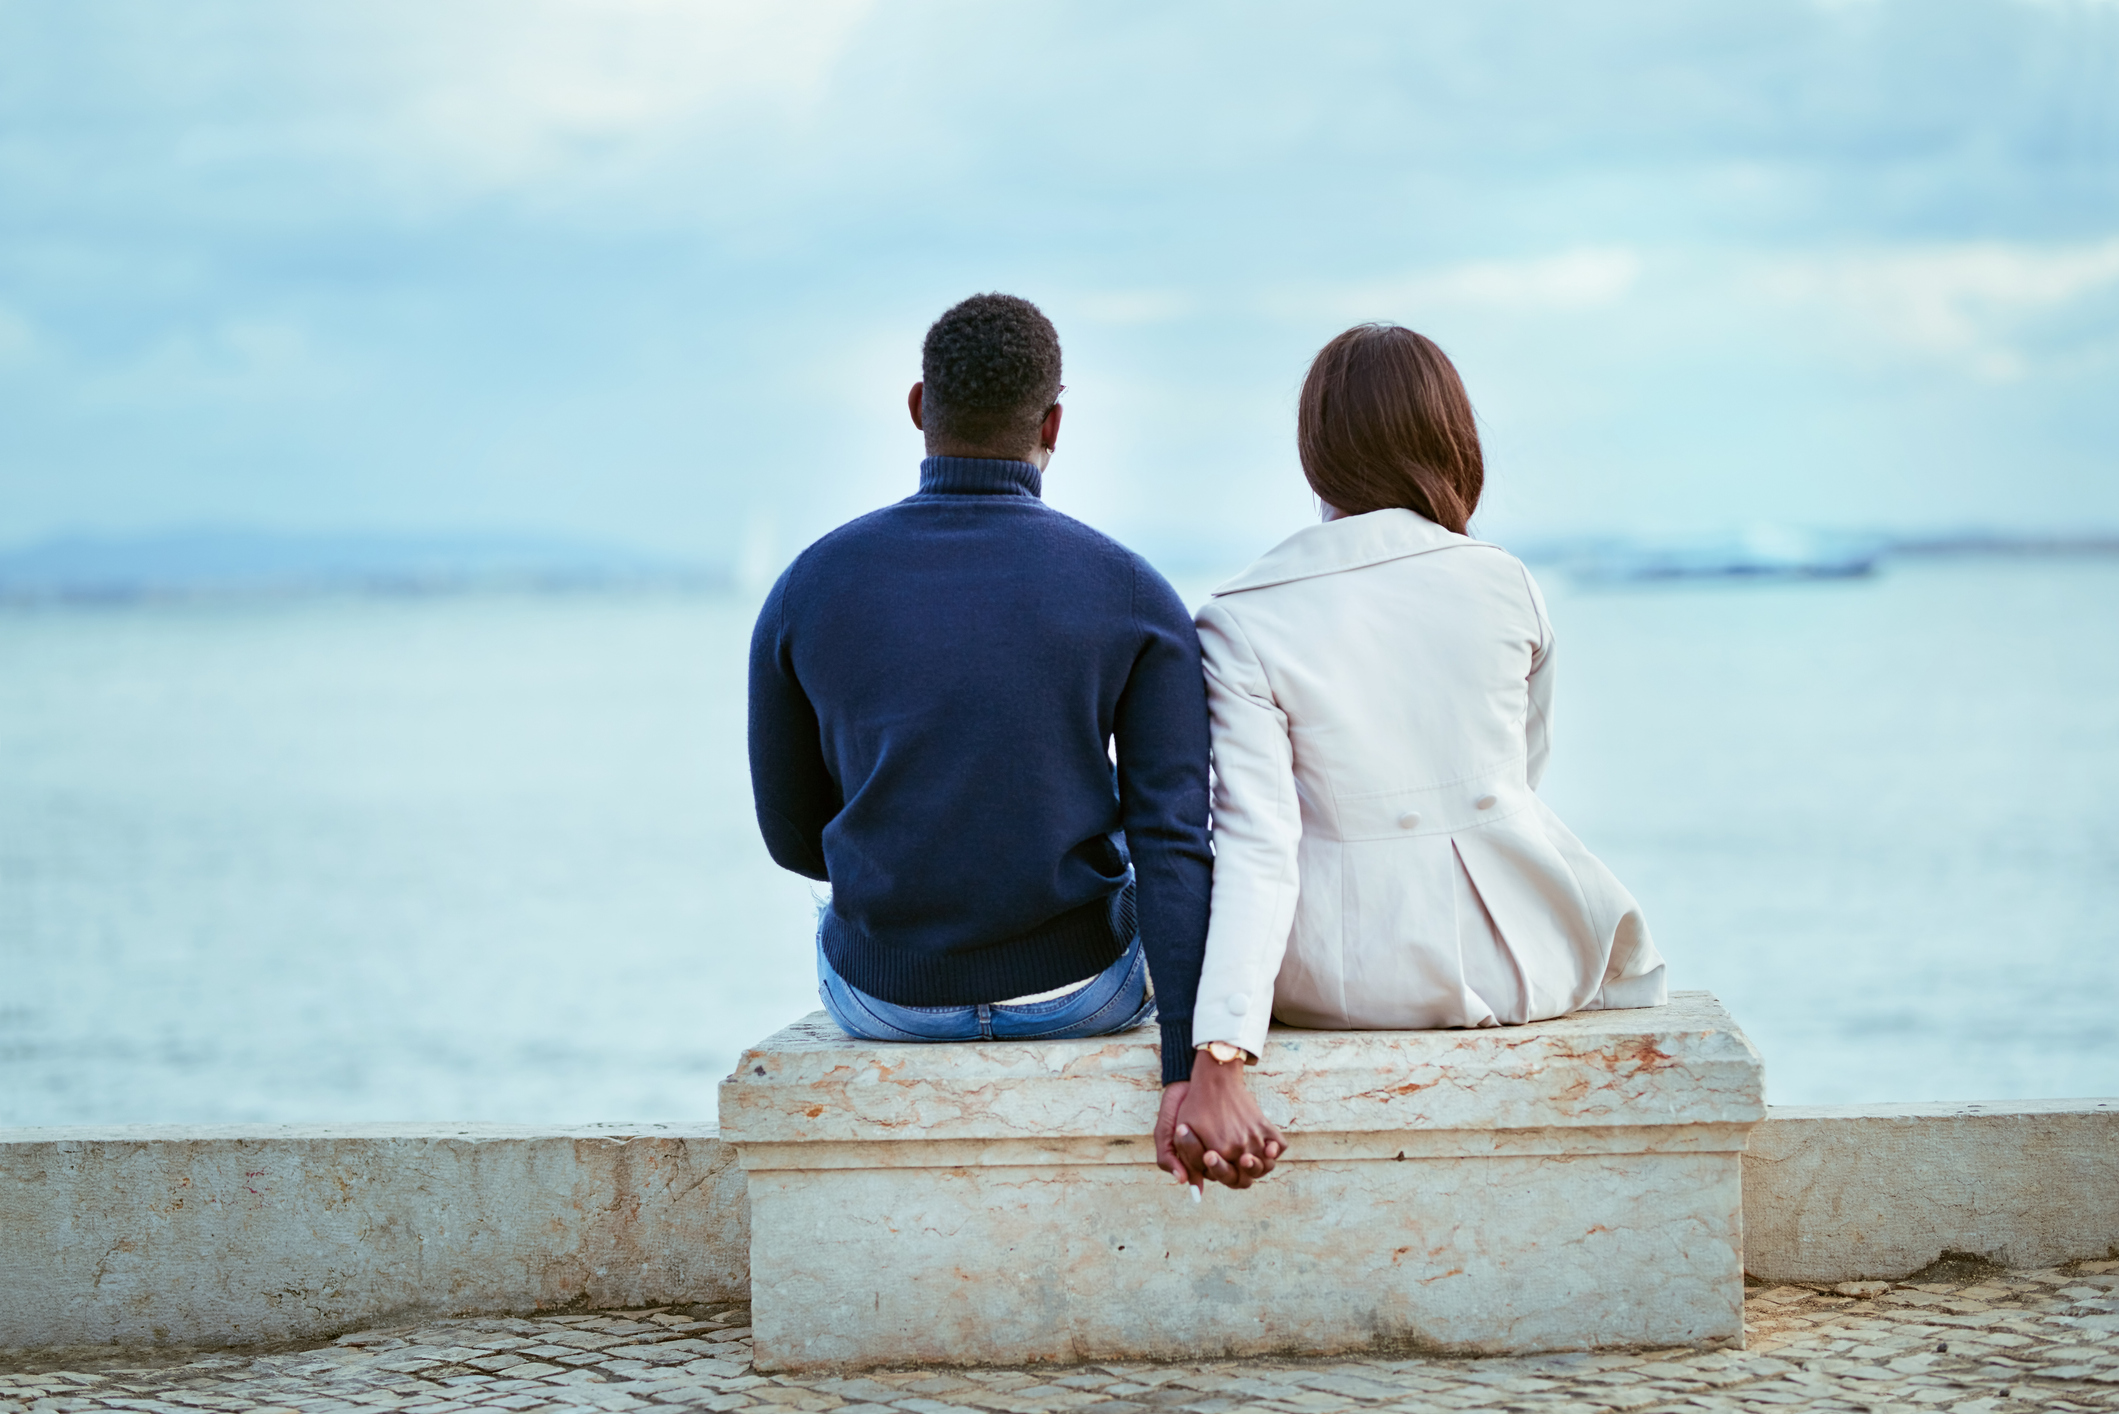 23 and We? Mating for Life Could Be Genetic